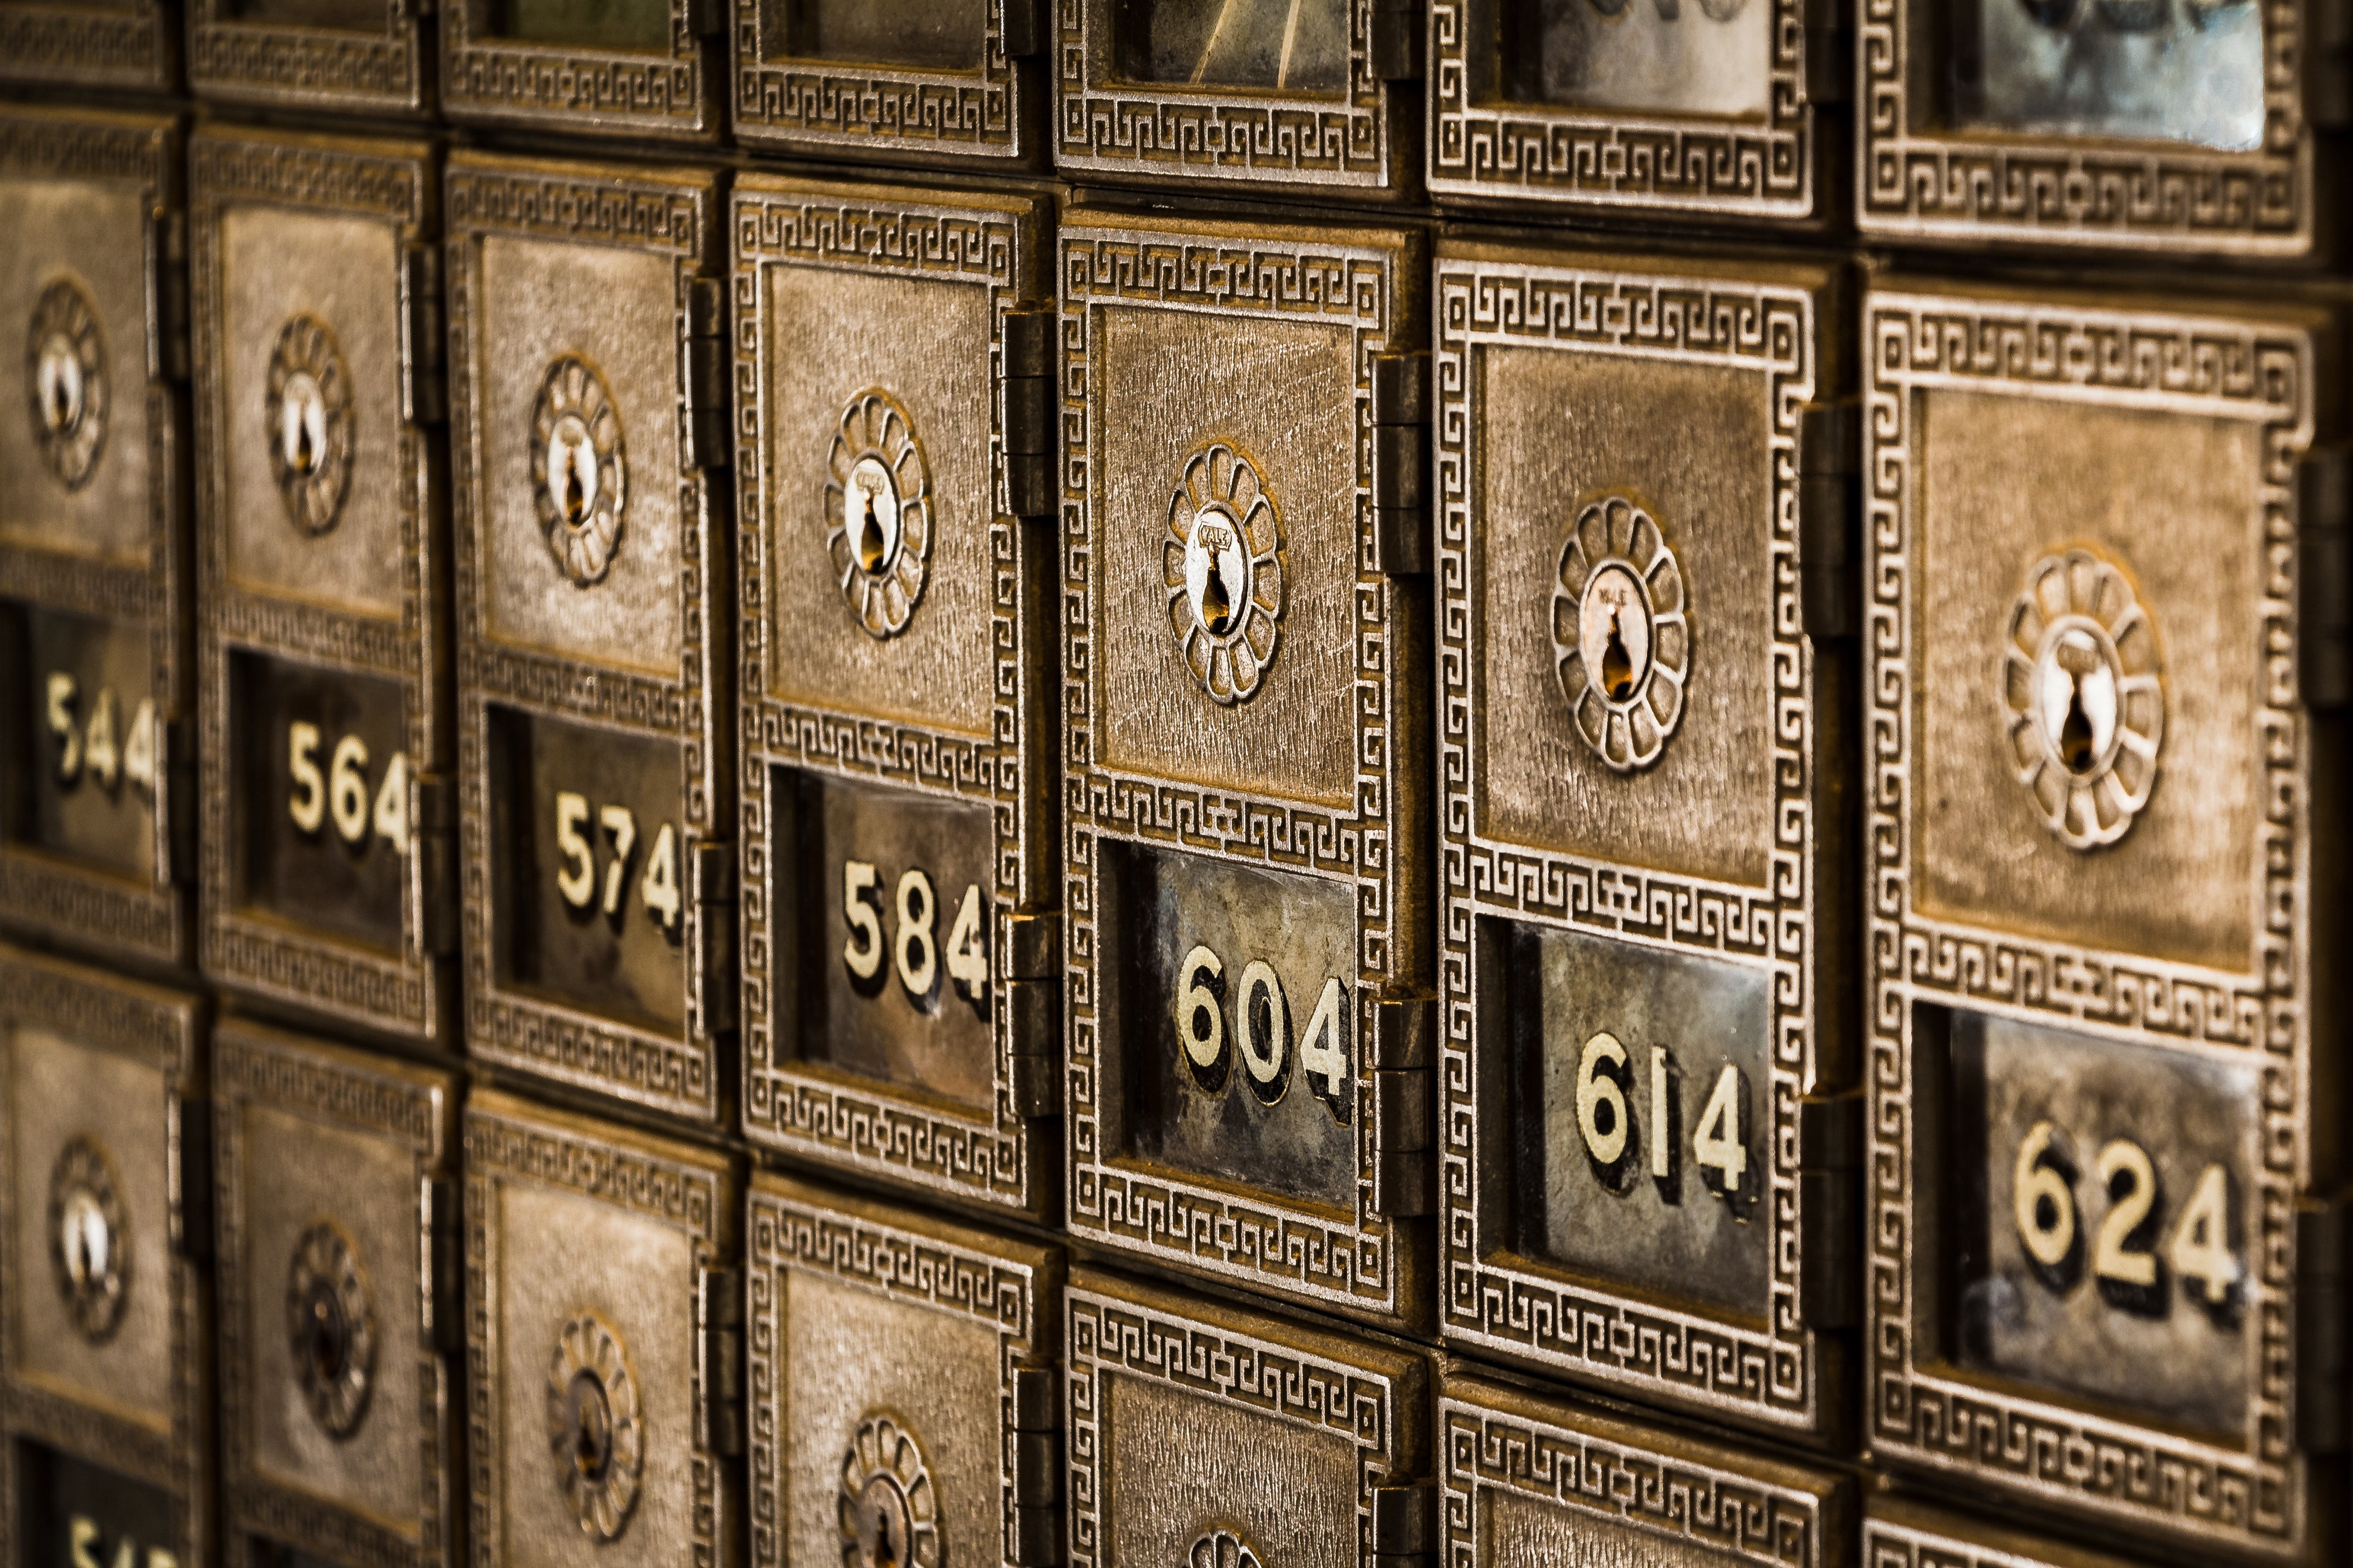 Old Safety Deposit Boxes in a bank